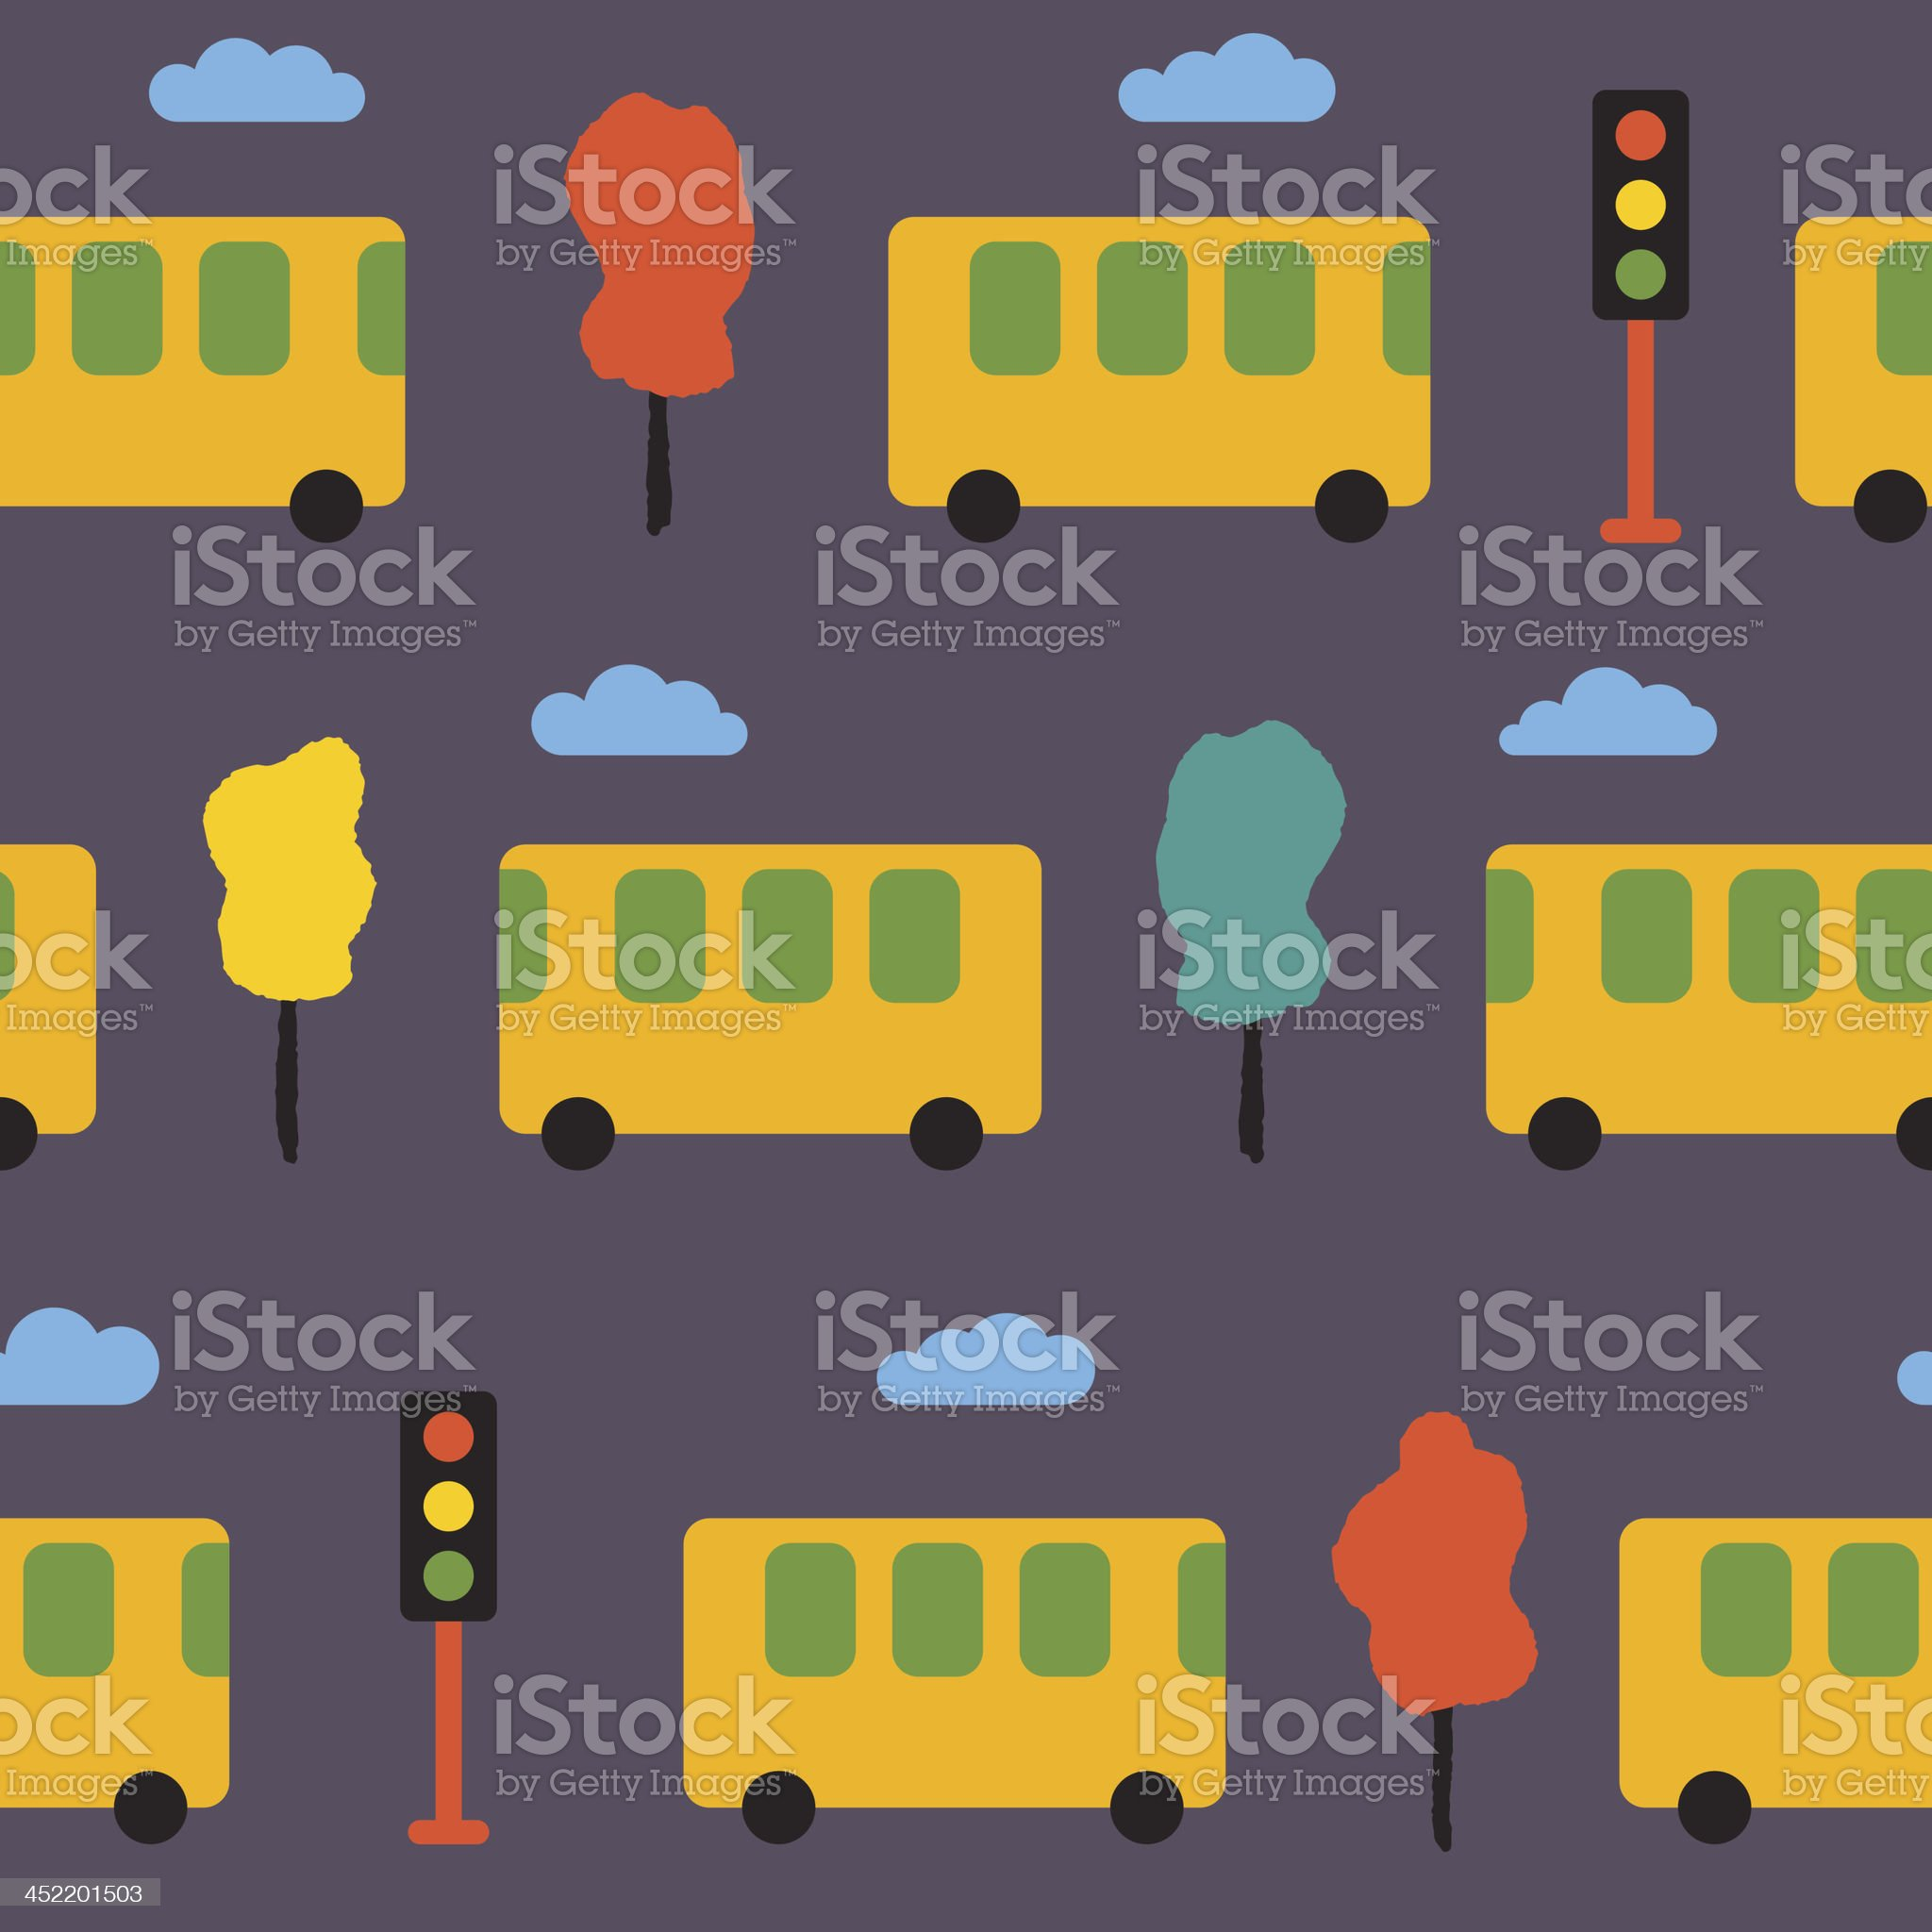 Elegant pattern with yellow buses, trees and traffic lights royalty-free stock vector art